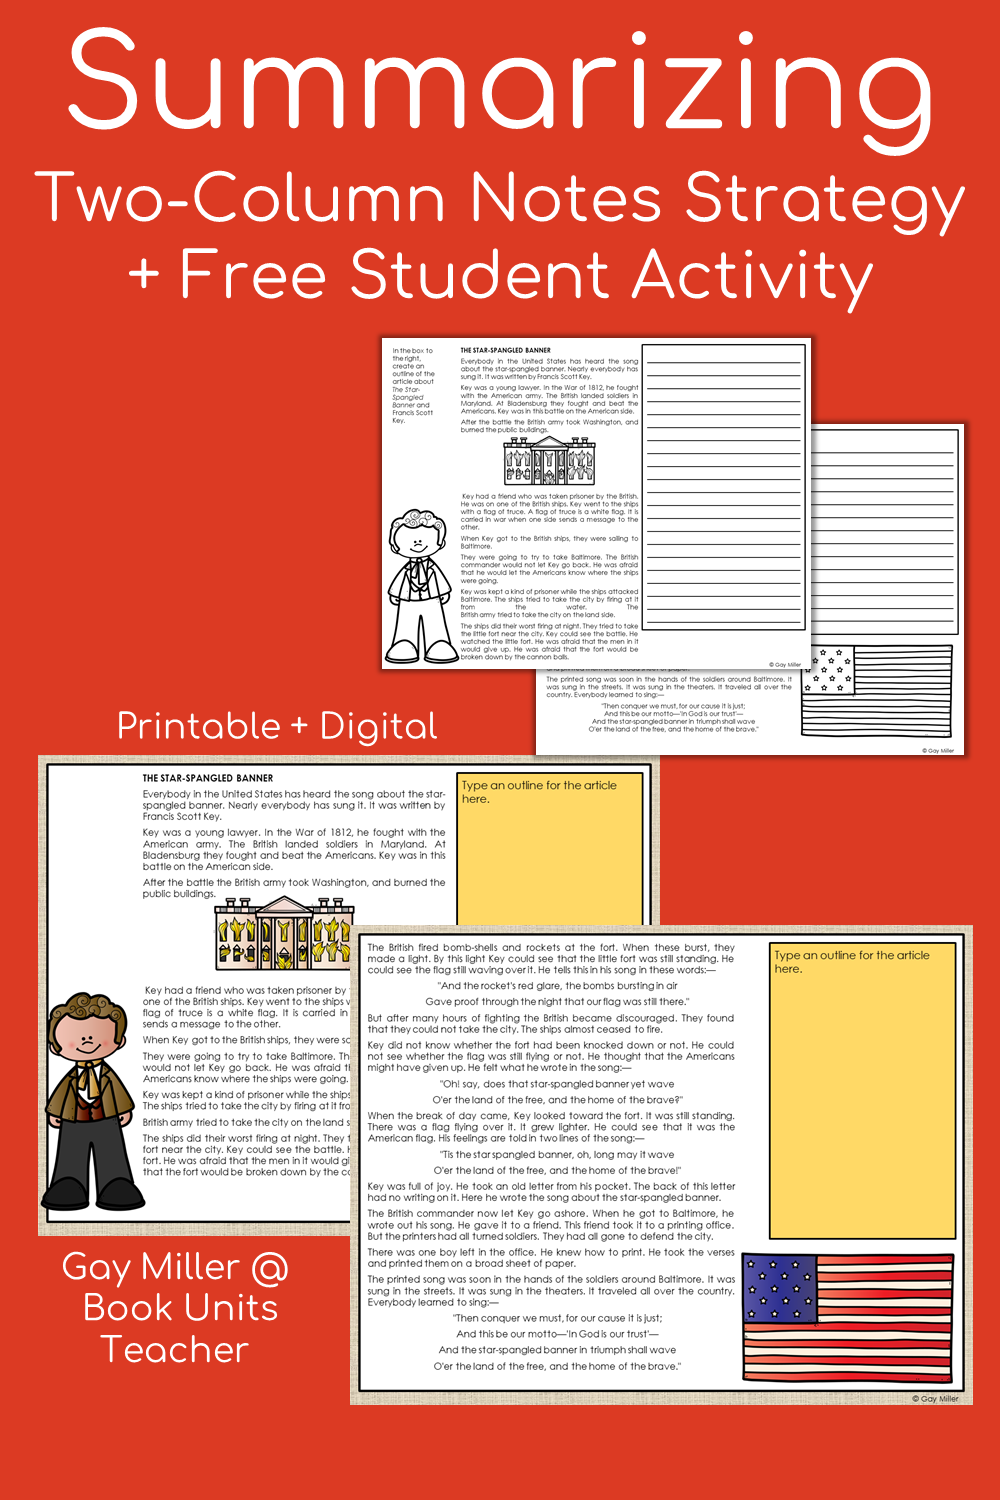 Summarizing Strategies - How to Write a Summary Free Teaching Materials